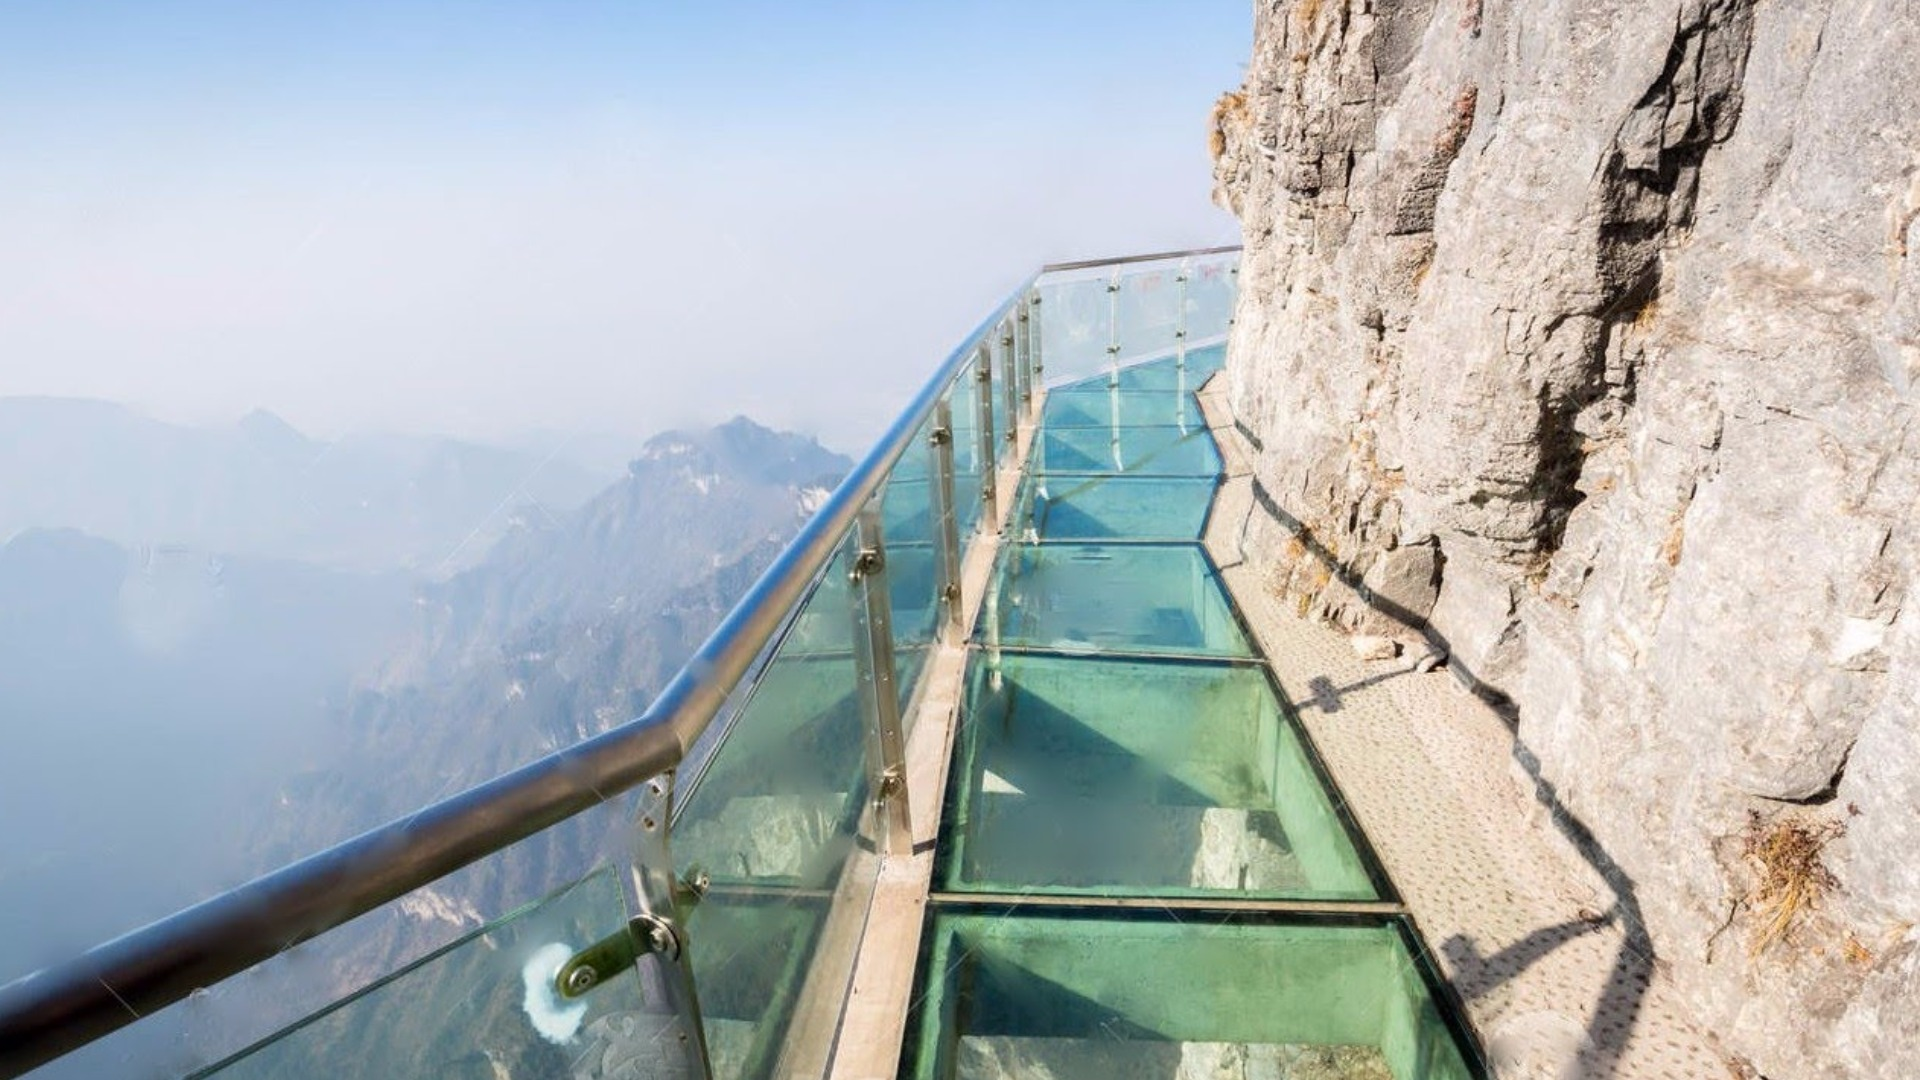 World's longest, highest glass bridge to open in China